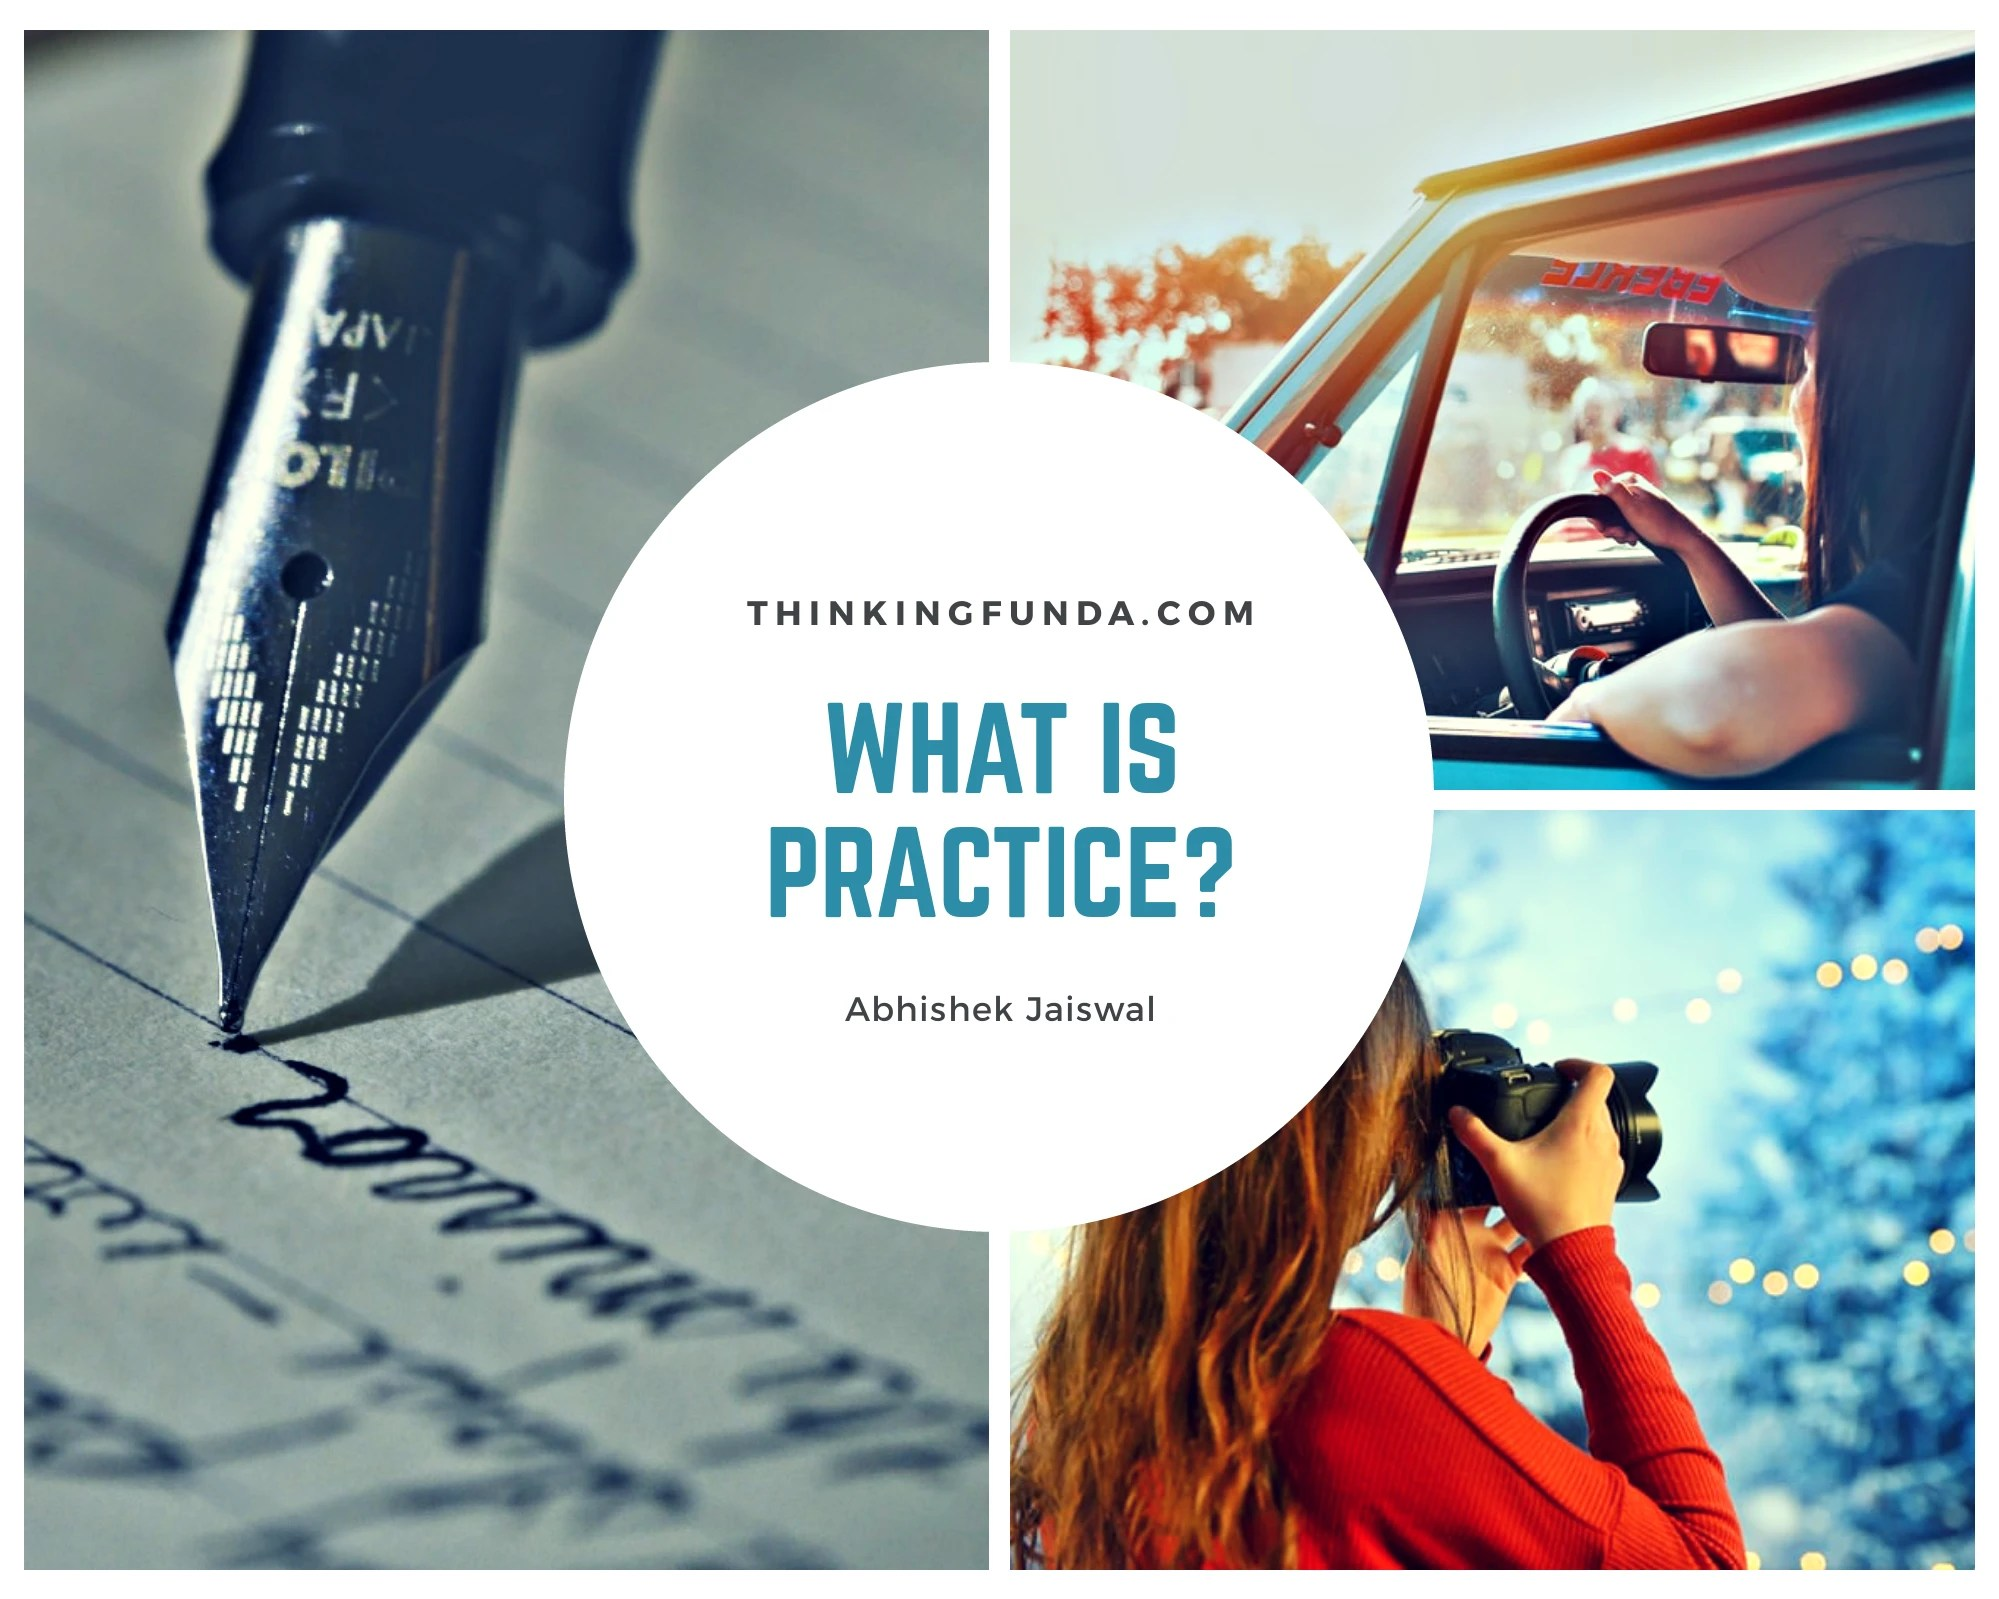 What is Practice? - Thinkingfunda - what is practice